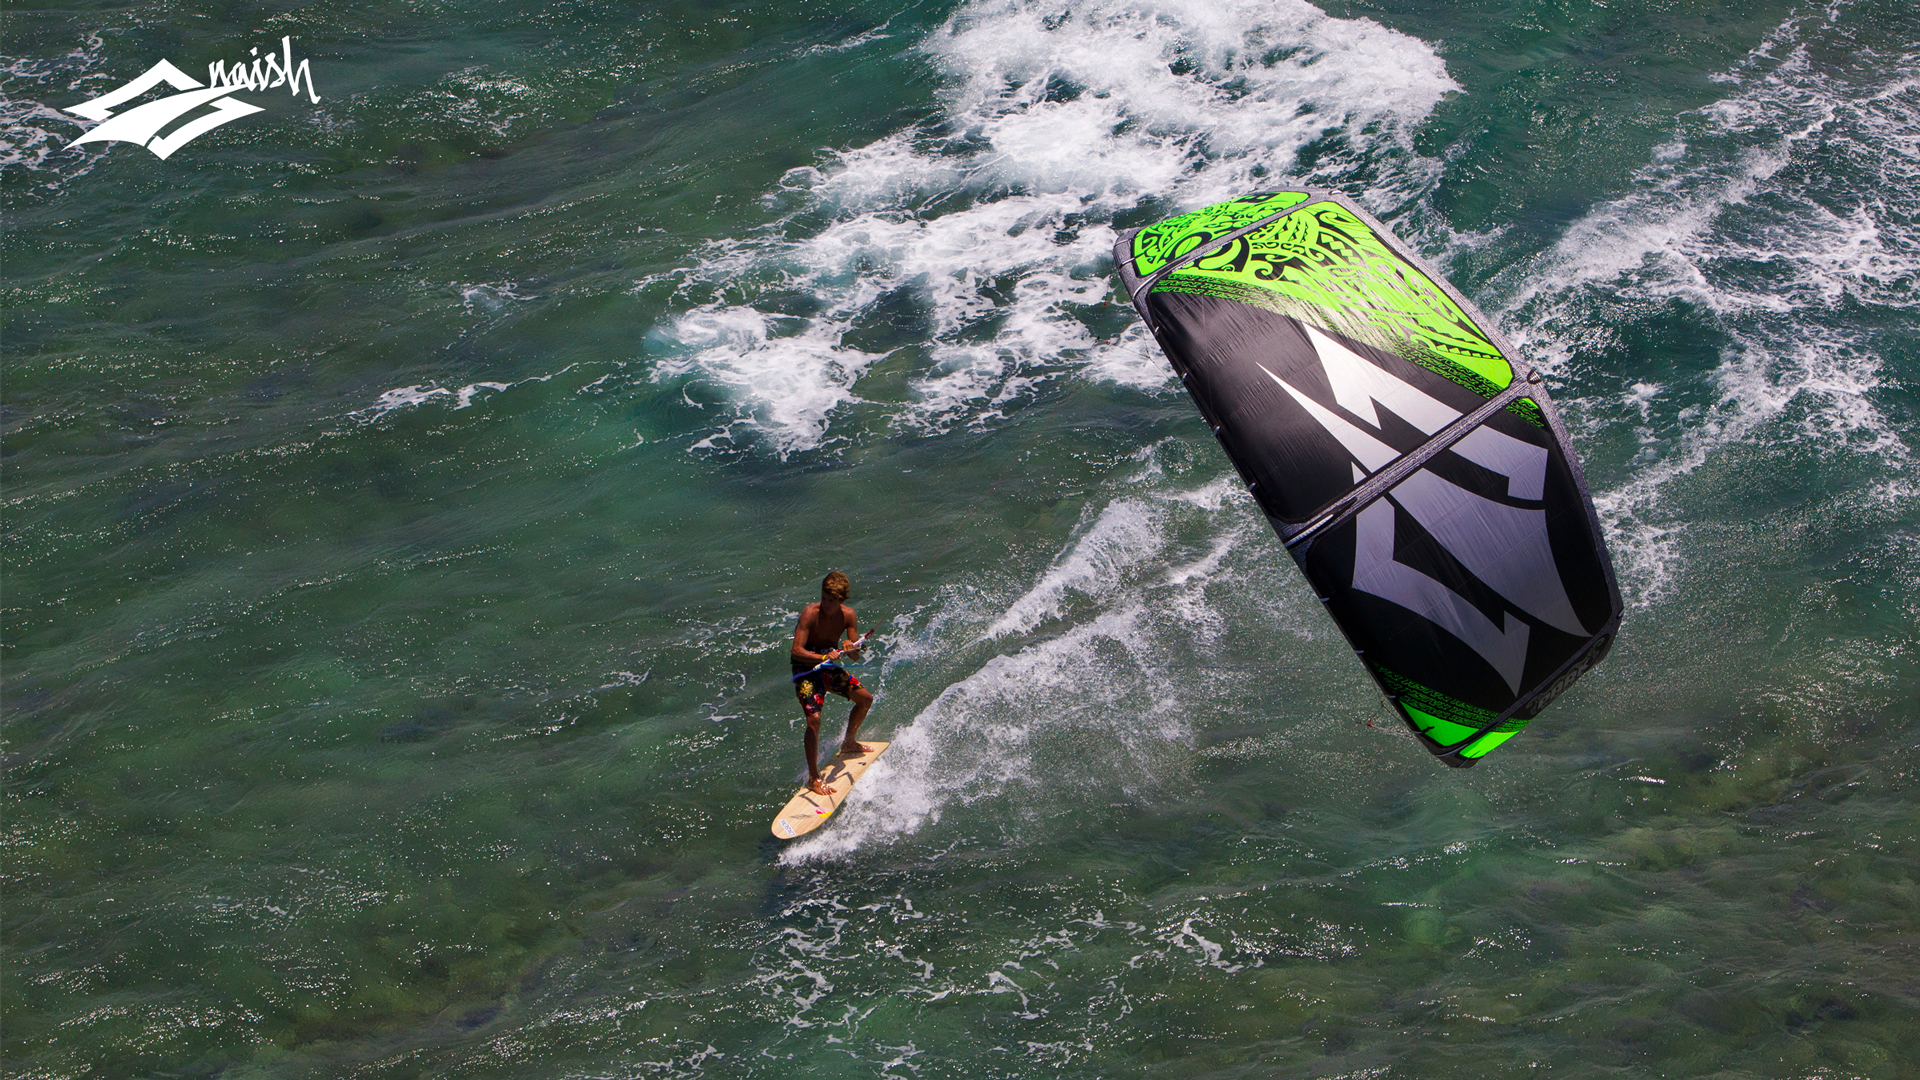 kitesurf wallpaper image - Kai Lenny cruising with the Naish Park kite and Alaia kiteboard off Hawaii - in resolution: High Definition - HD 16:9 1920 X 1080